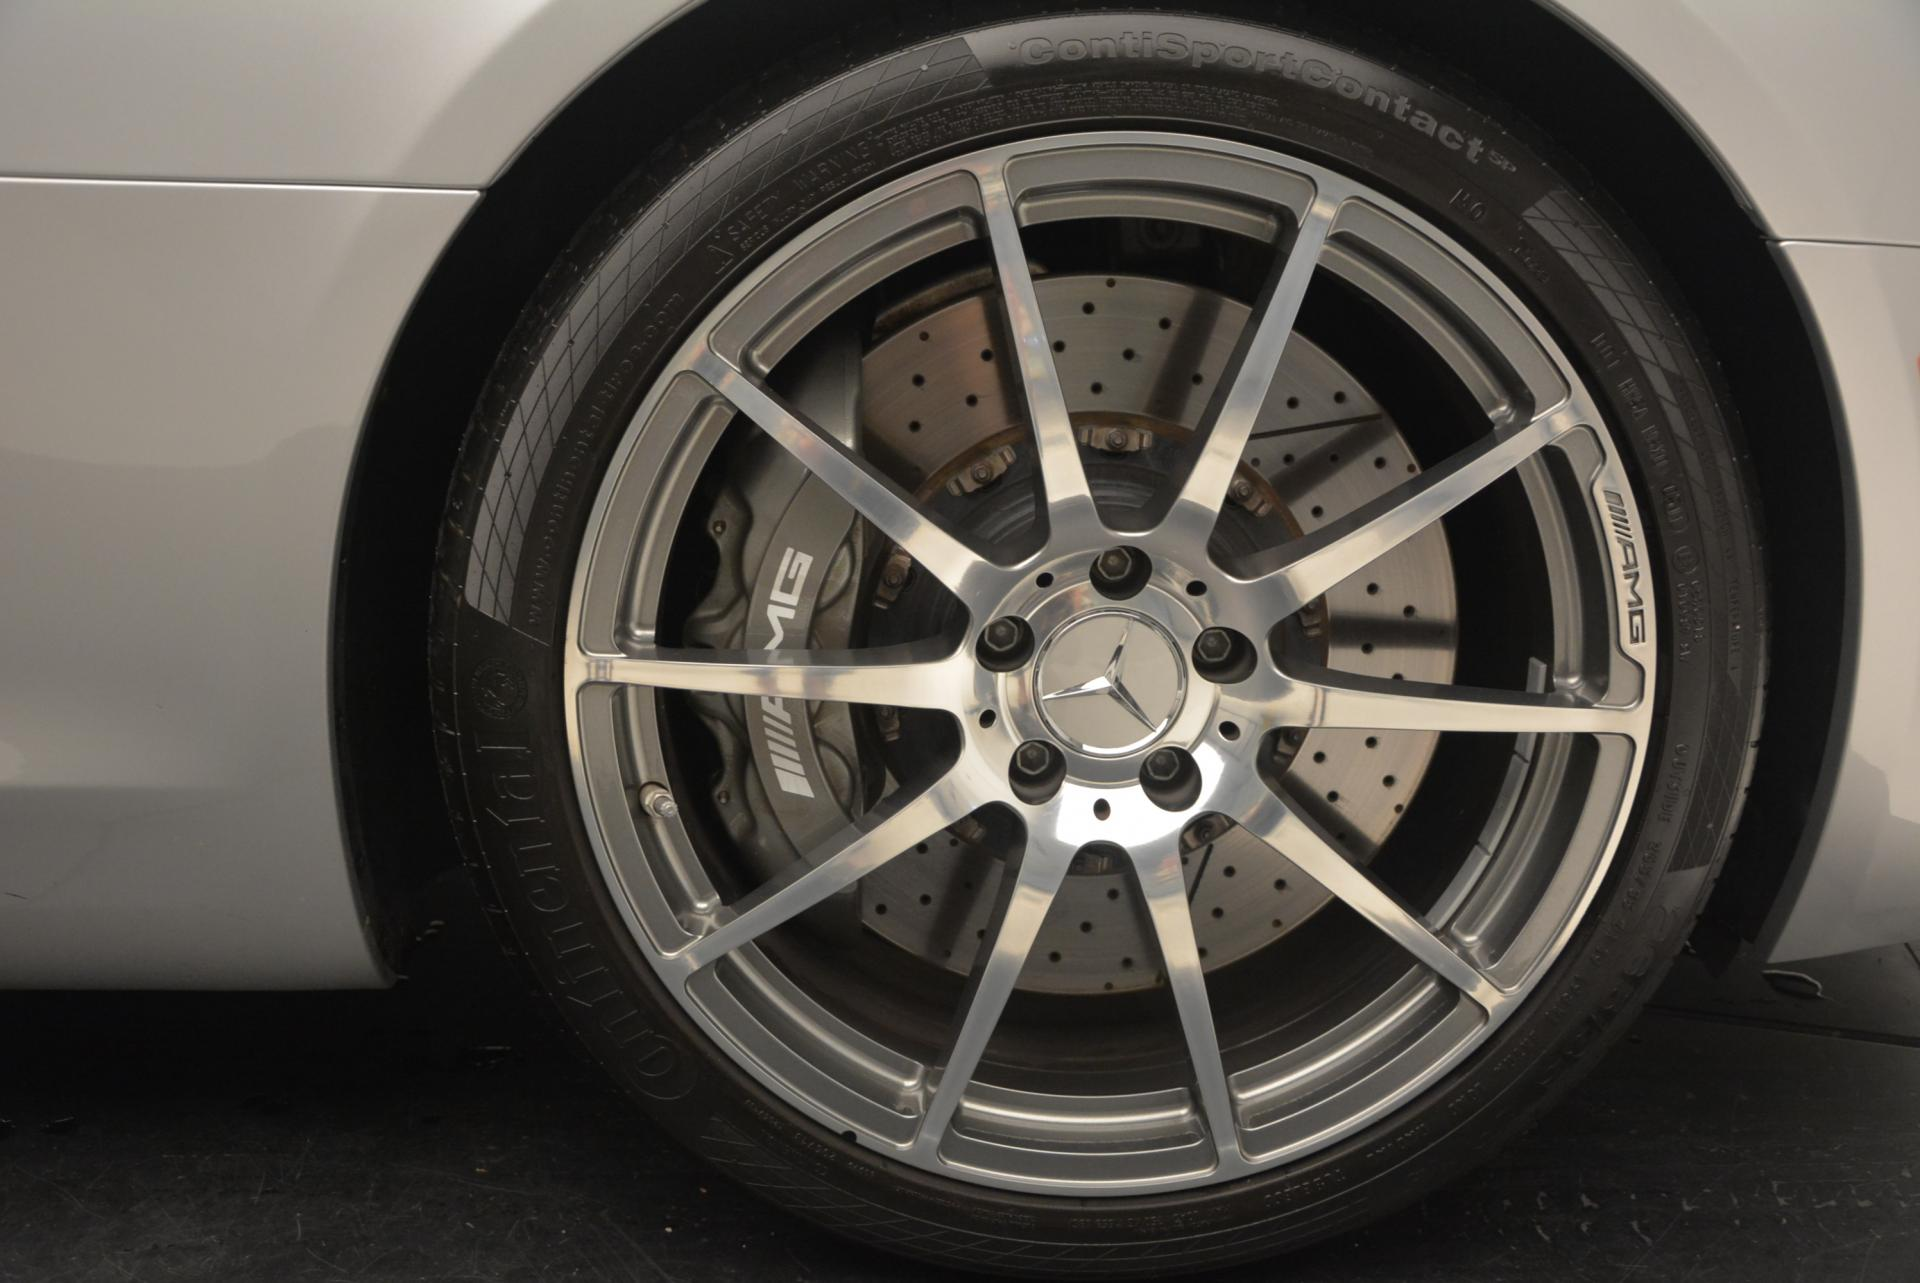 Used 2012 Mercedes Benz SLS AMG  For Sale In Greenwich, CT. Alfa Romeo of Greenwich, 7058 517_p42